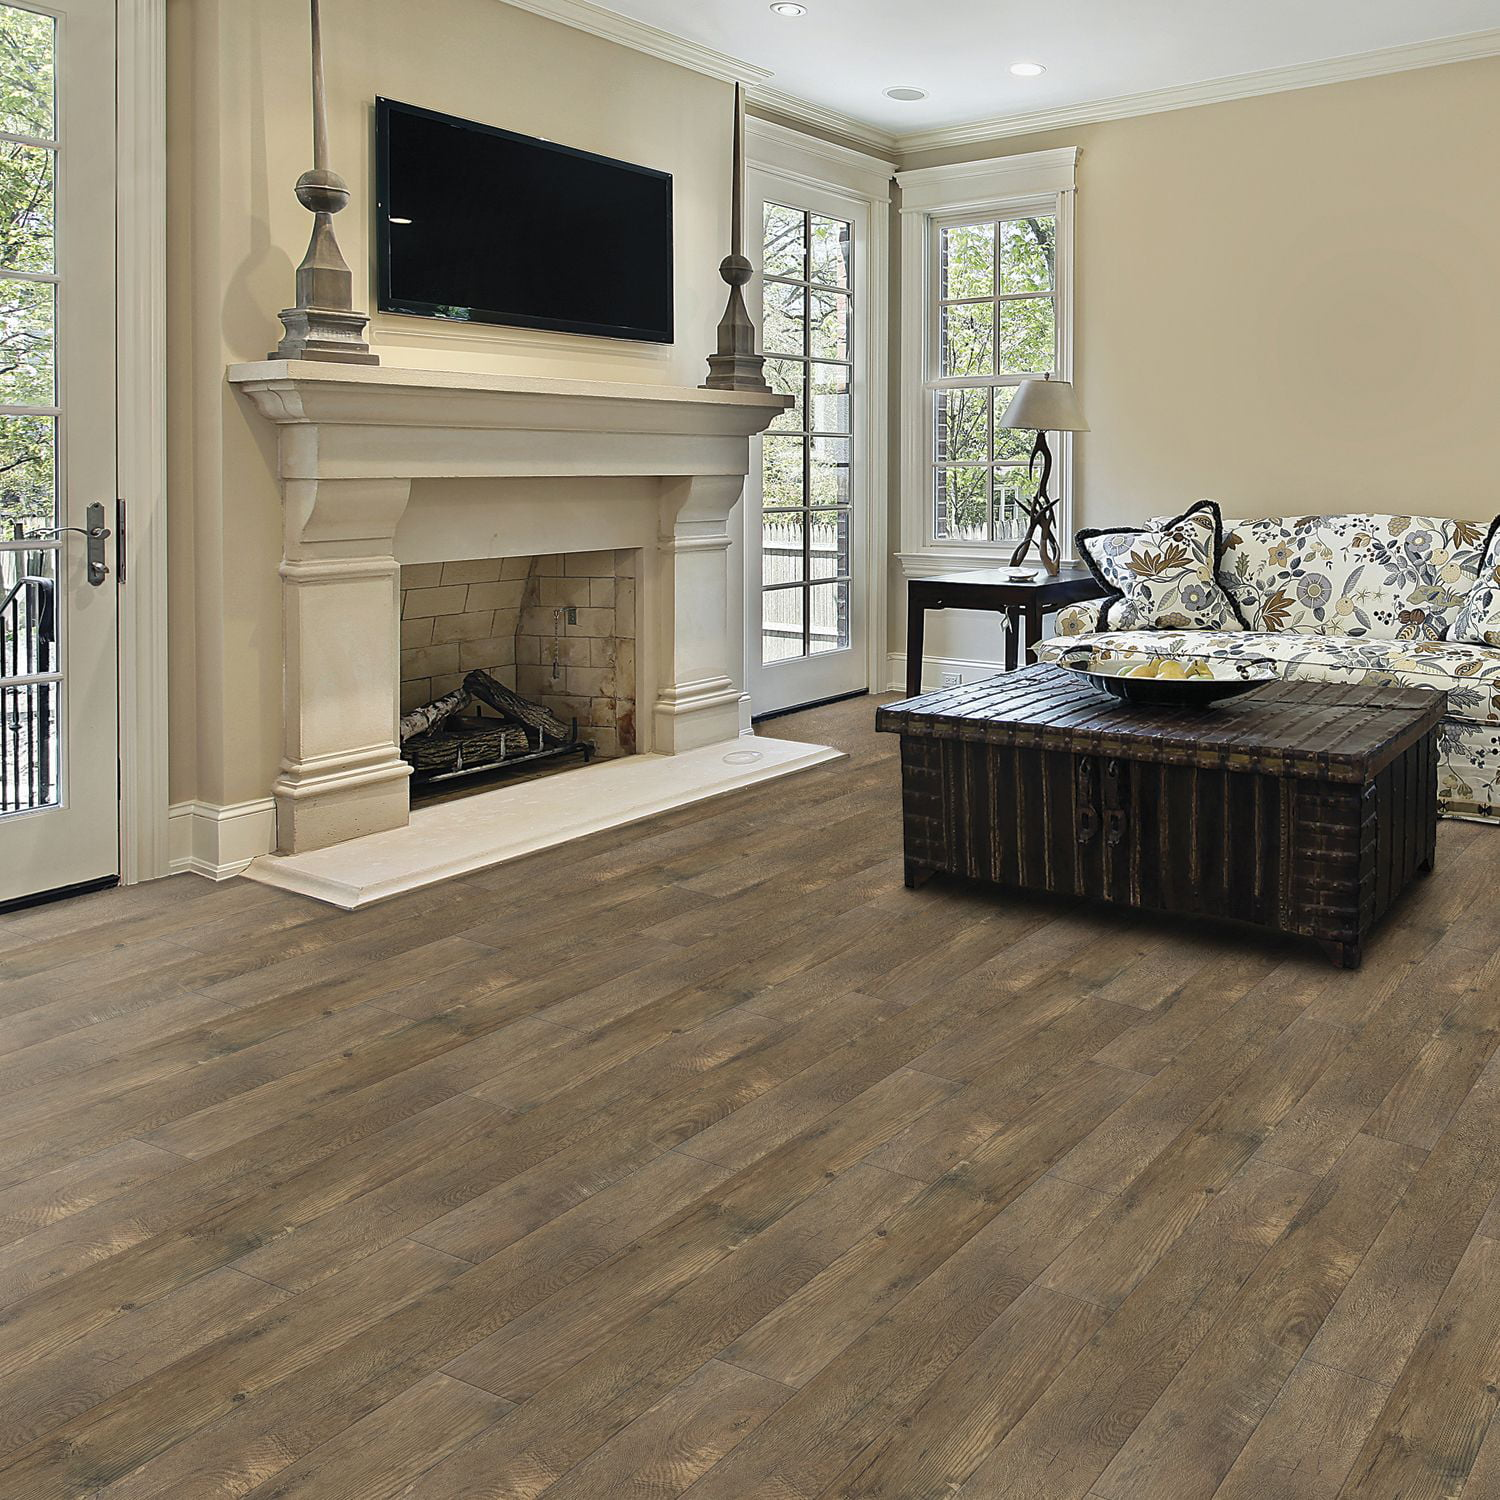 ca lowe oak distressed ft in laminate style flooring my w plank x canada s l wood estate floors